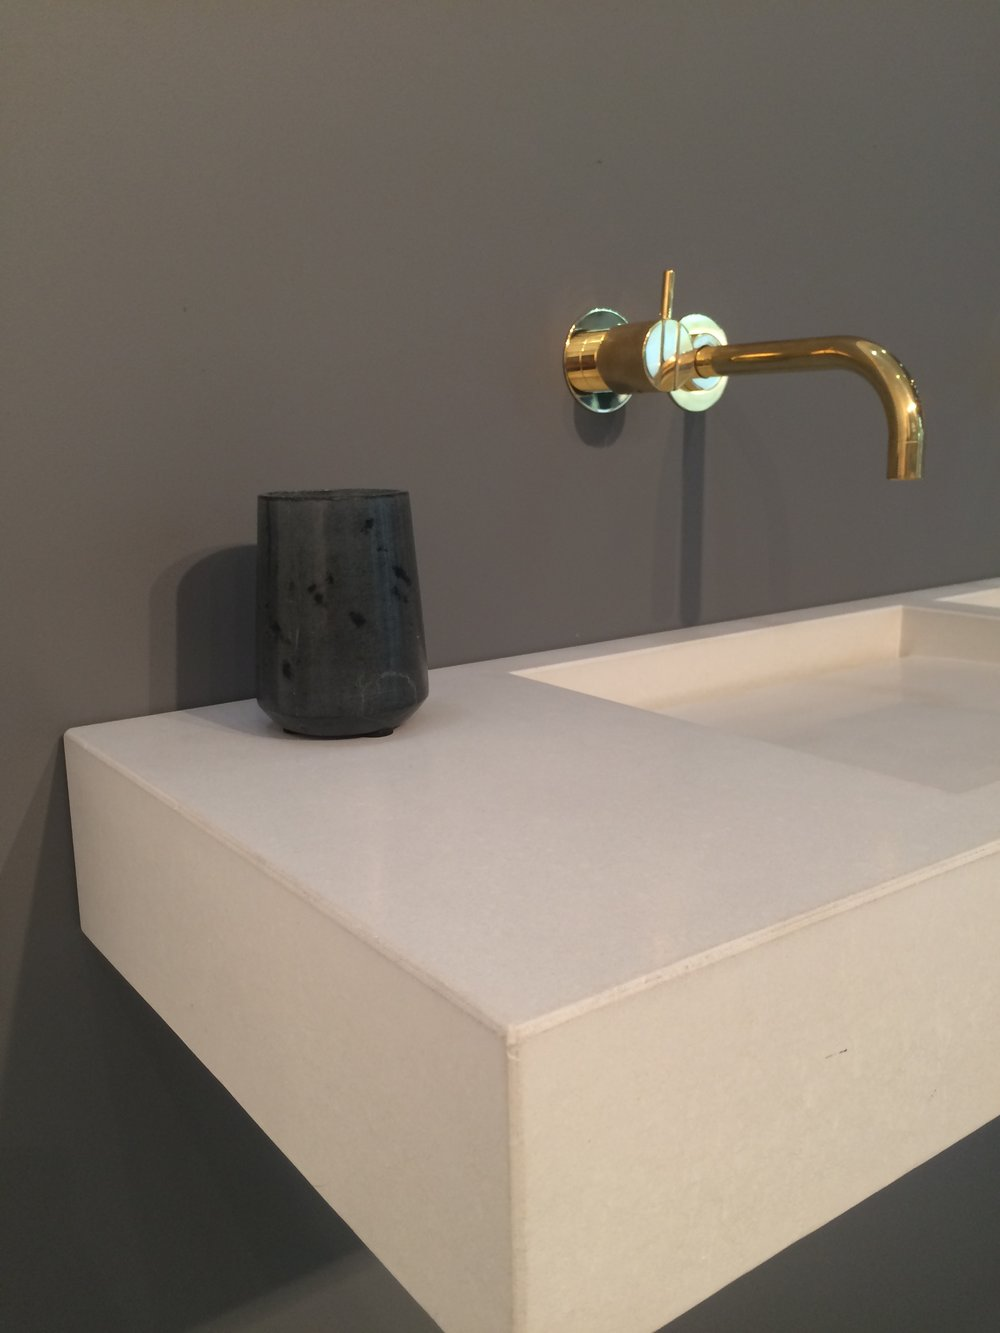 Vola Faucet In Brass. Tub Spout Would Be The Same.